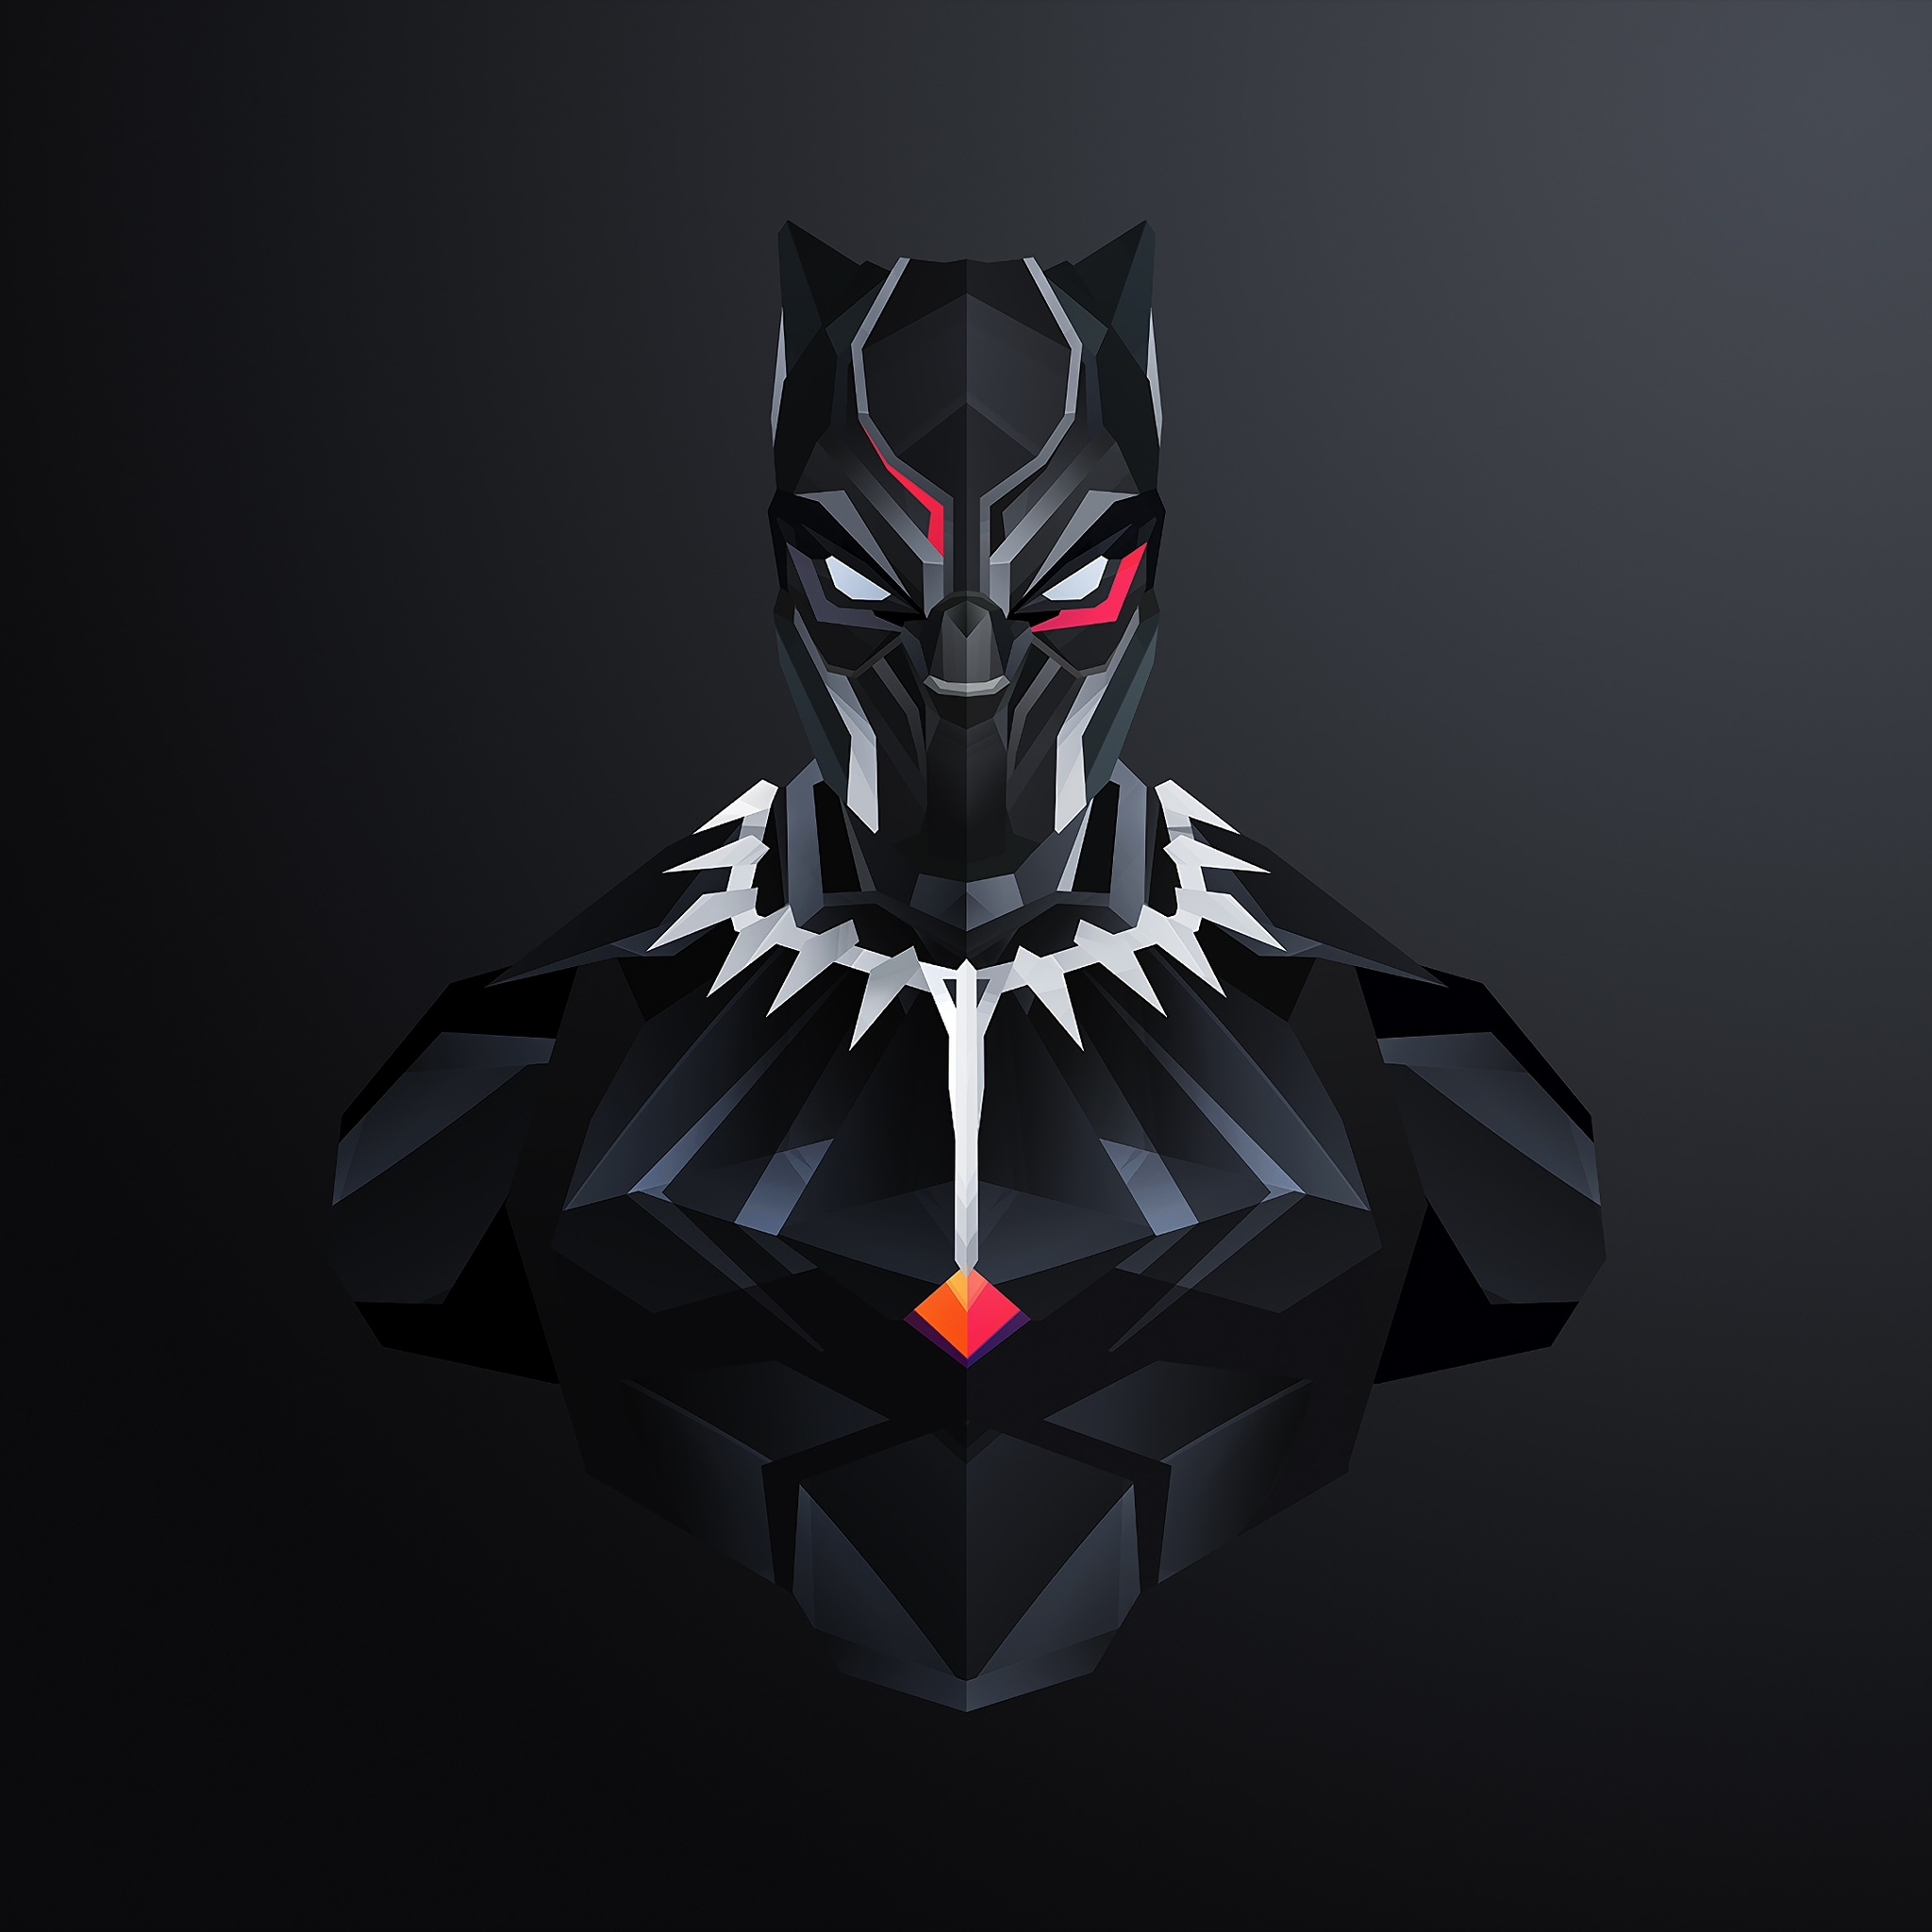 2048x2048 Black Panther Minimalism 2018 Ipad Air HD 4k Wallpapers, Images, Backgrounds, Photos and Pictures